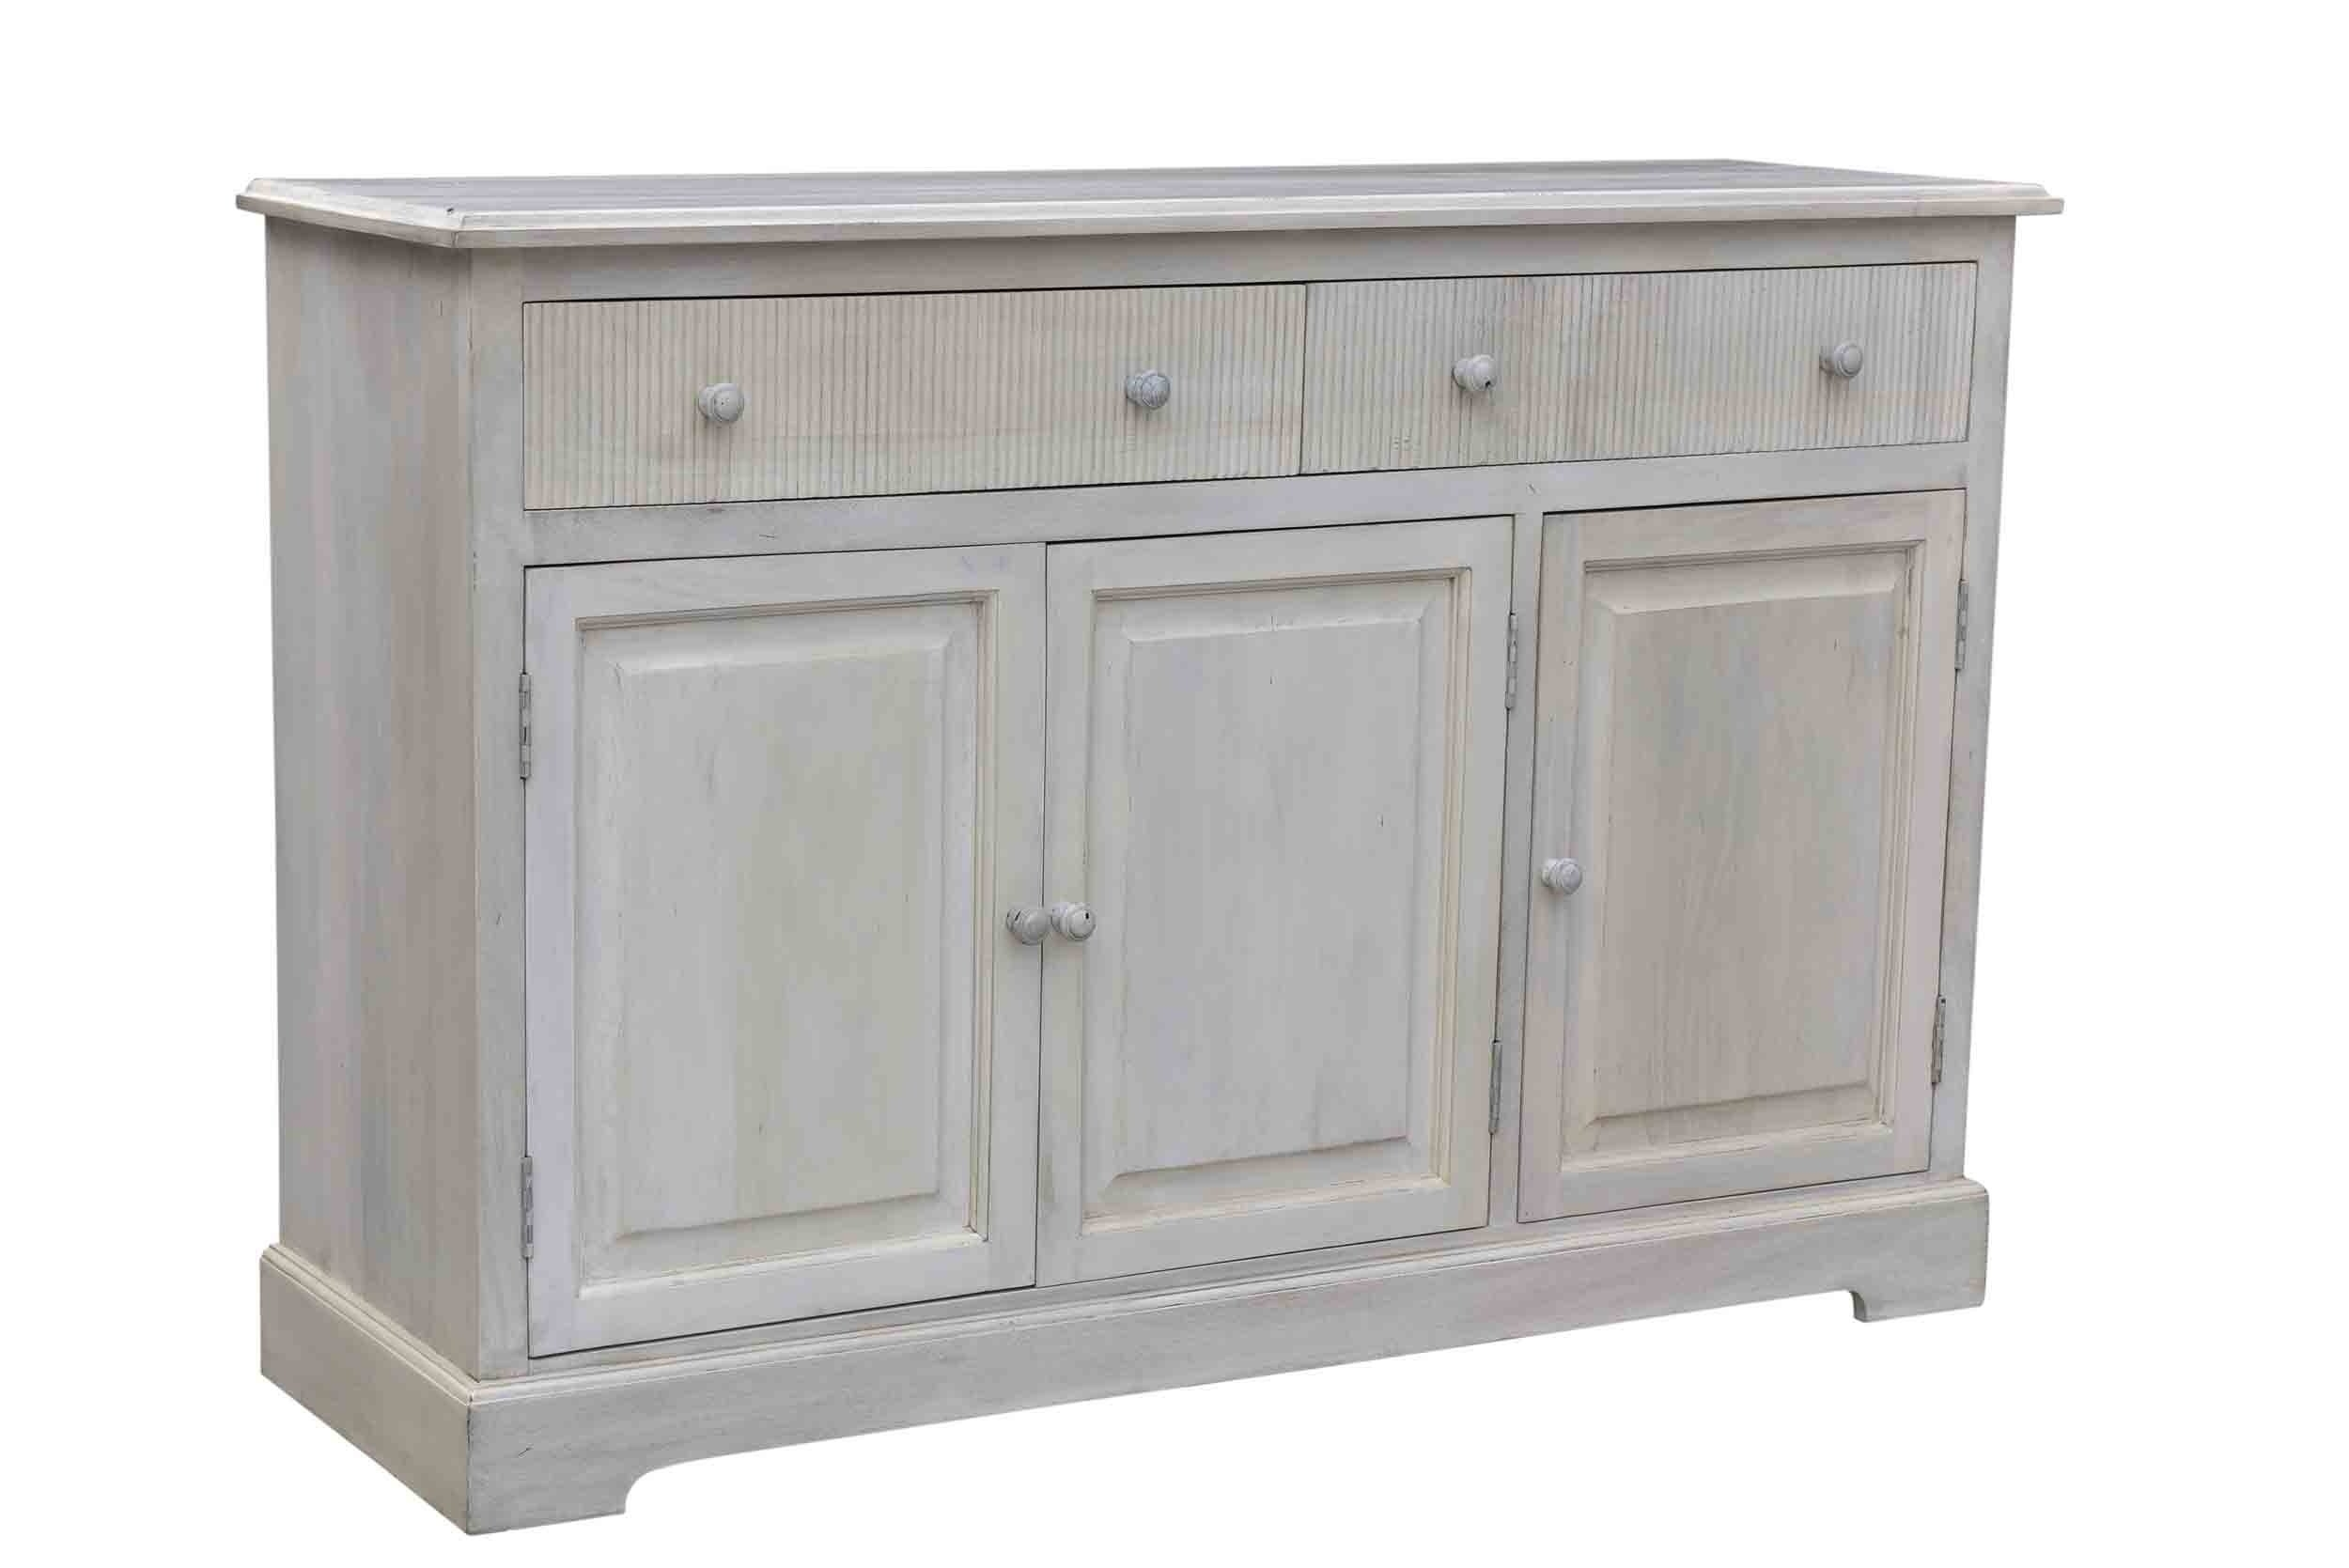 Coursey Sideboard | Joss & Main With Newest Norwood Sideboards (View 2 of 20)